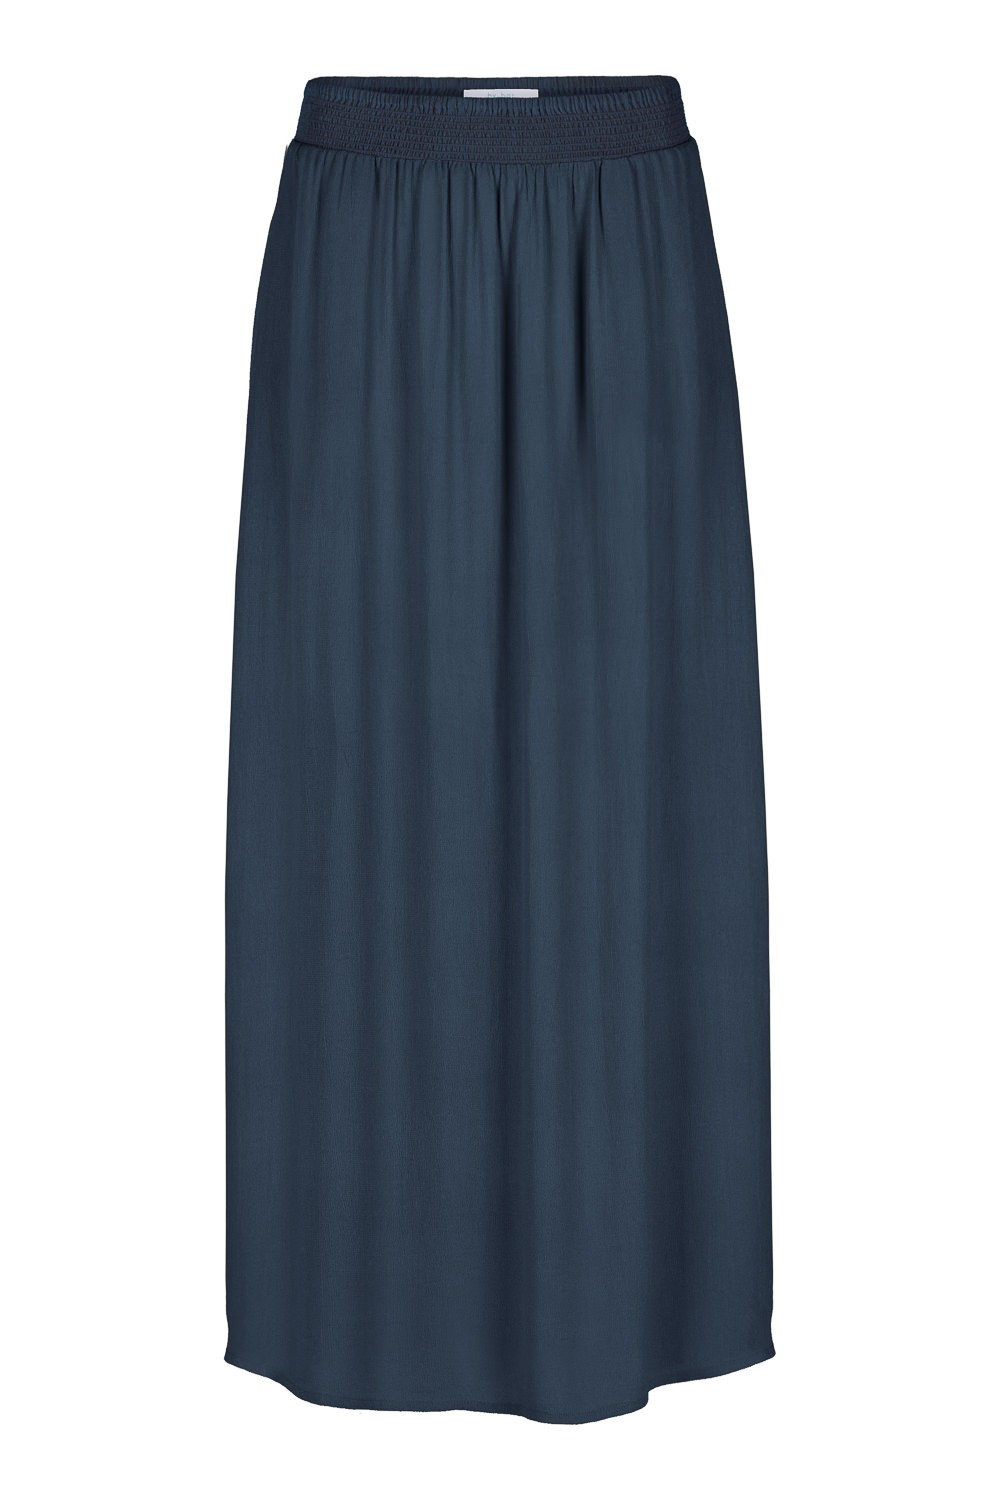 Emelie skirt - oil blue